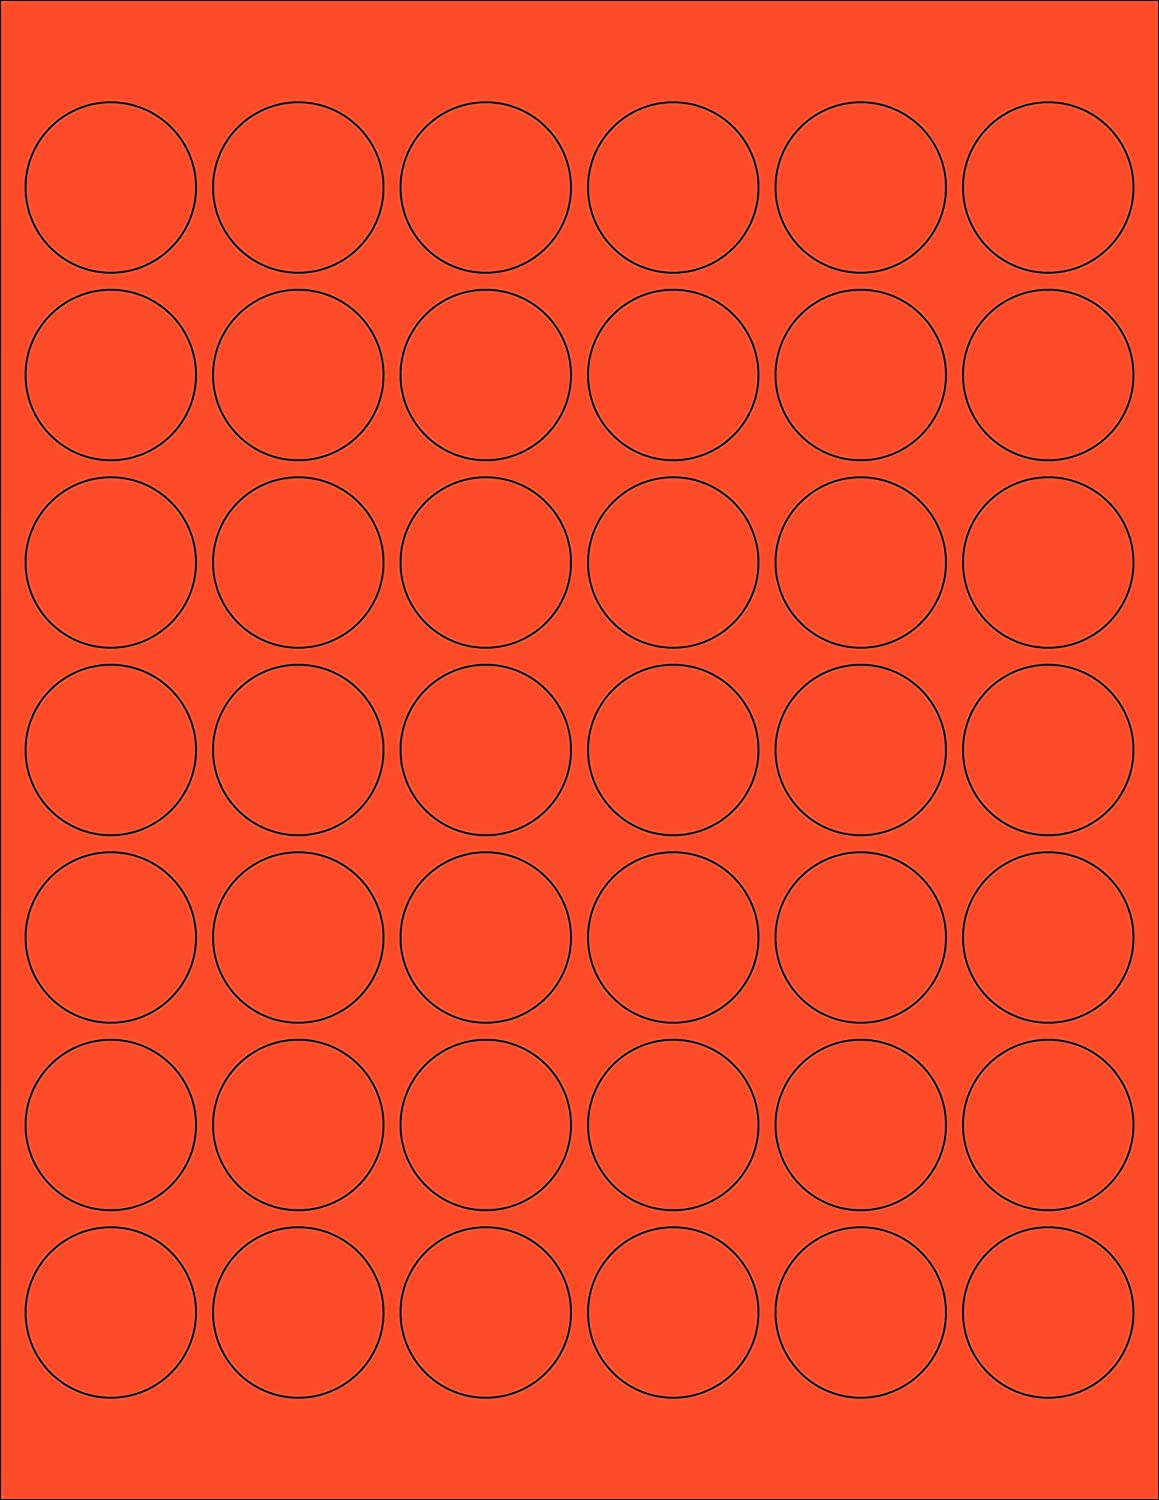 amazoncom chromalabel 1 14 inch round labels for laser inkjet printers 1 050pack fluorescent red orange office products